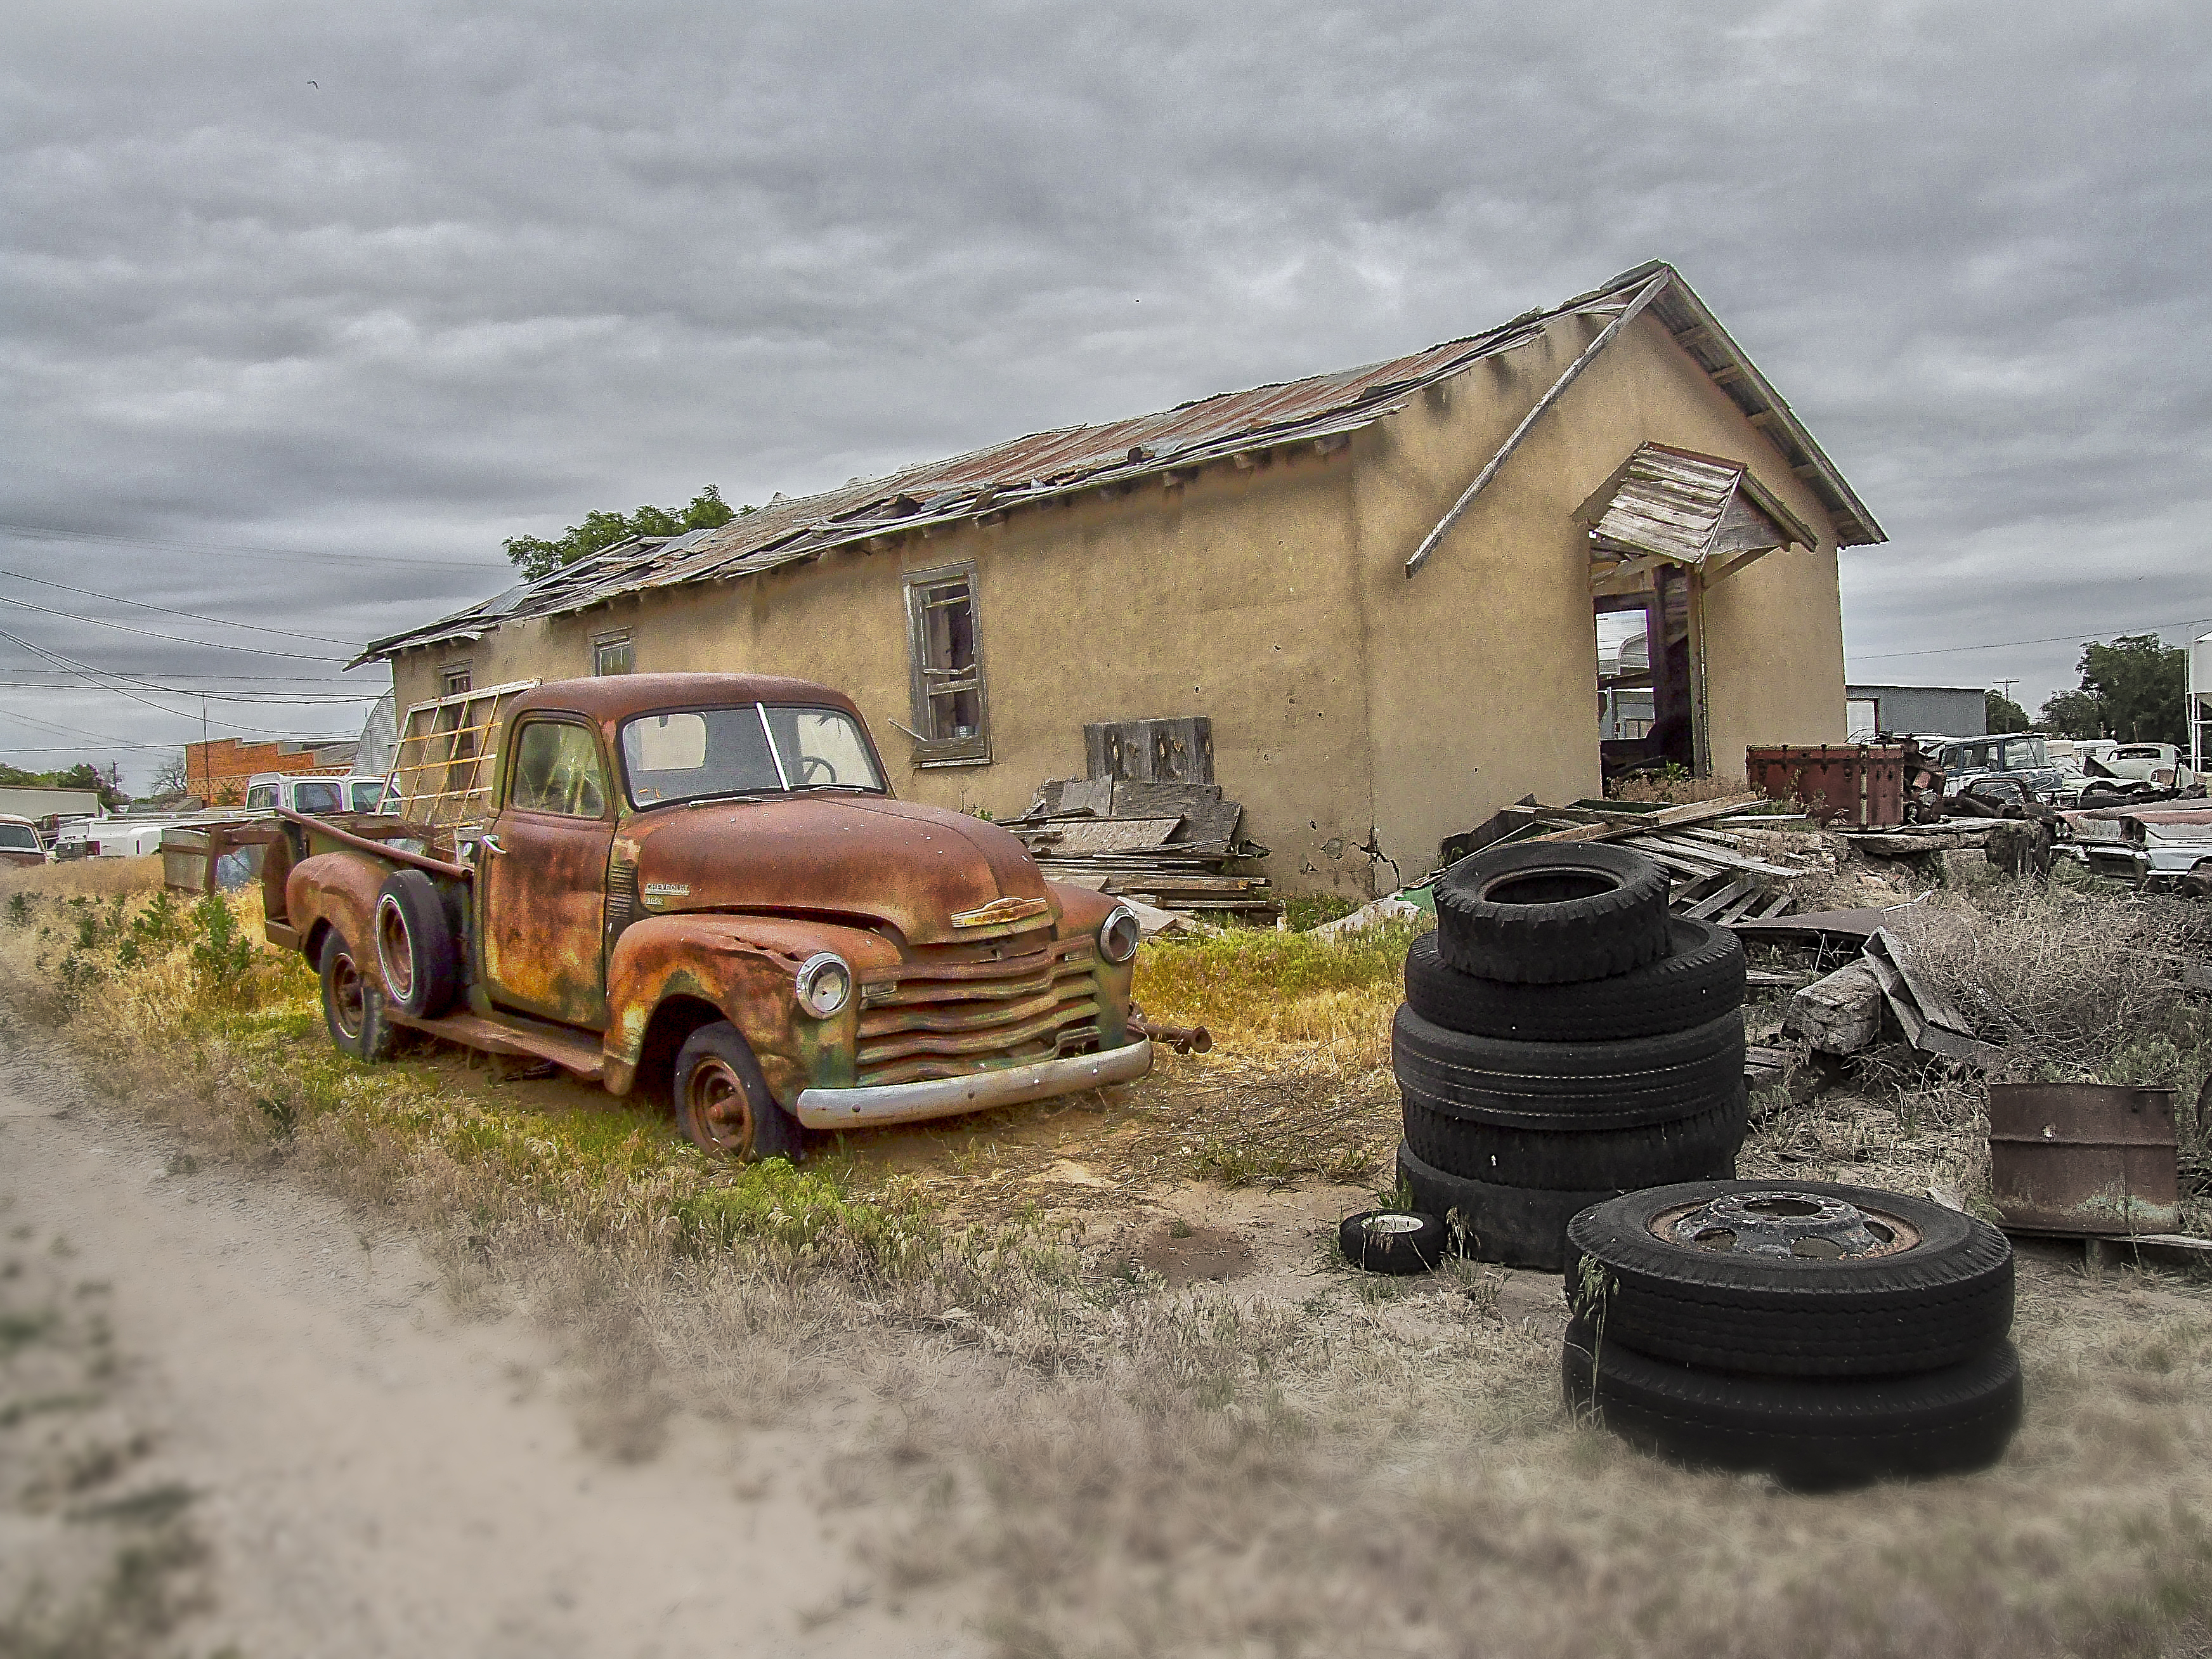 Chevy Pickup V2 - Higgins TX